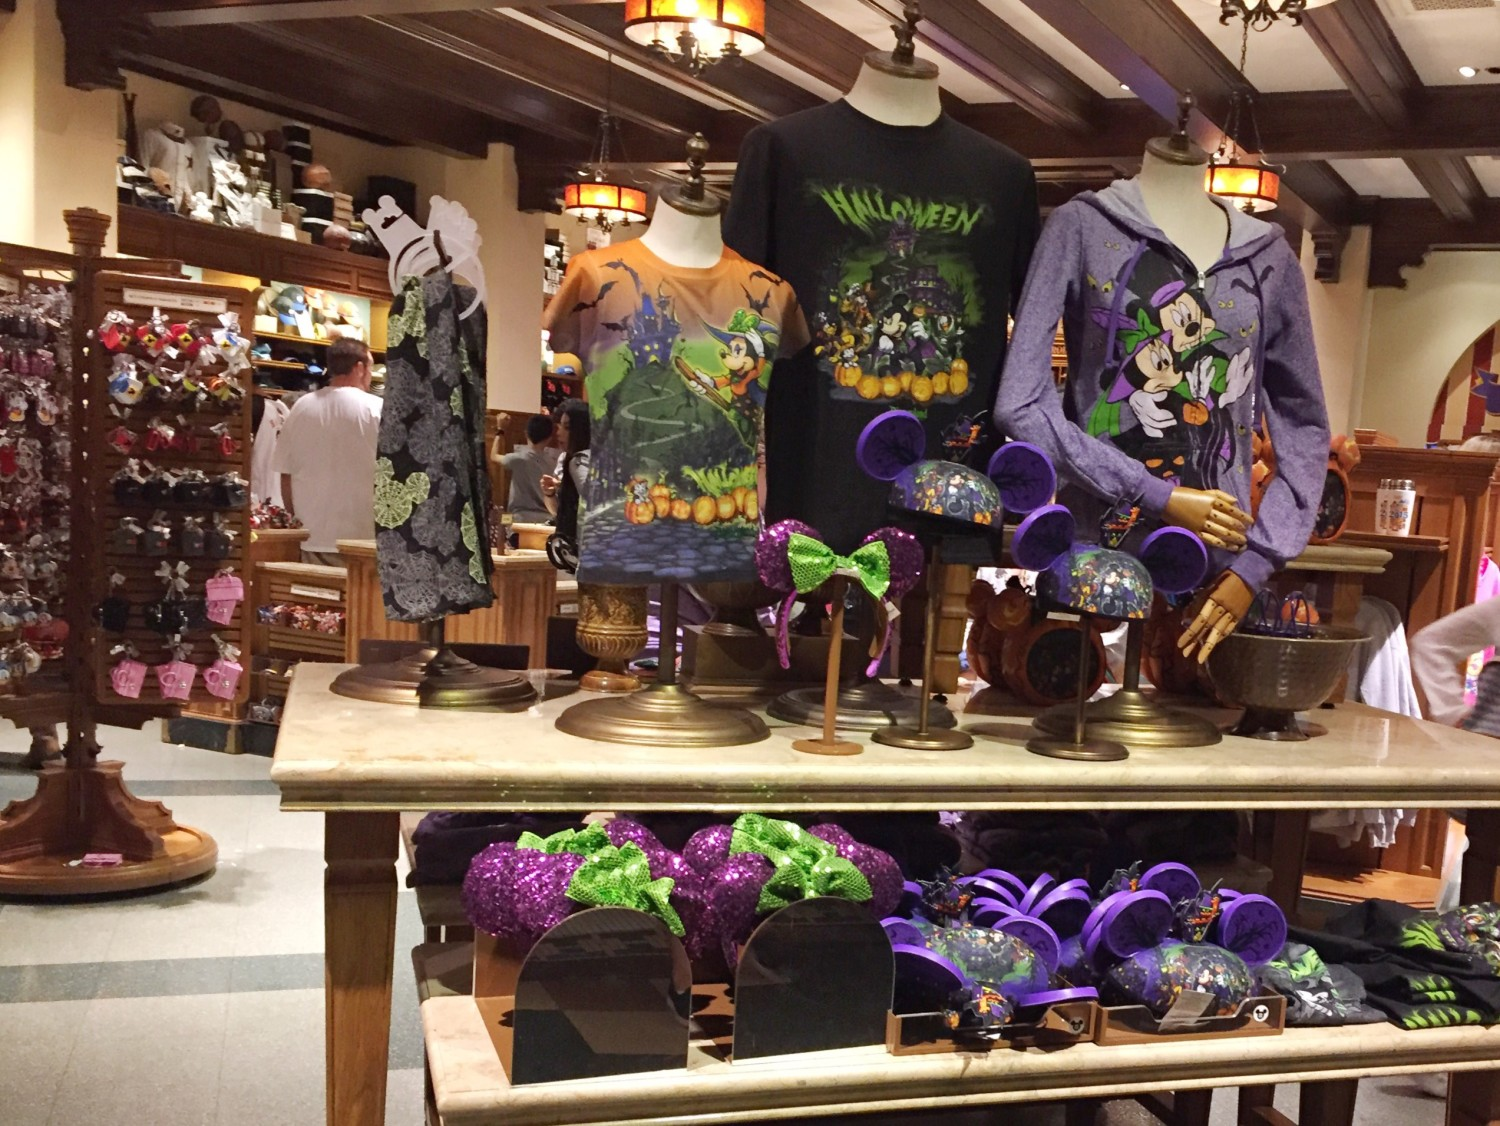 Disneyland 2015 Halloween Merchandise